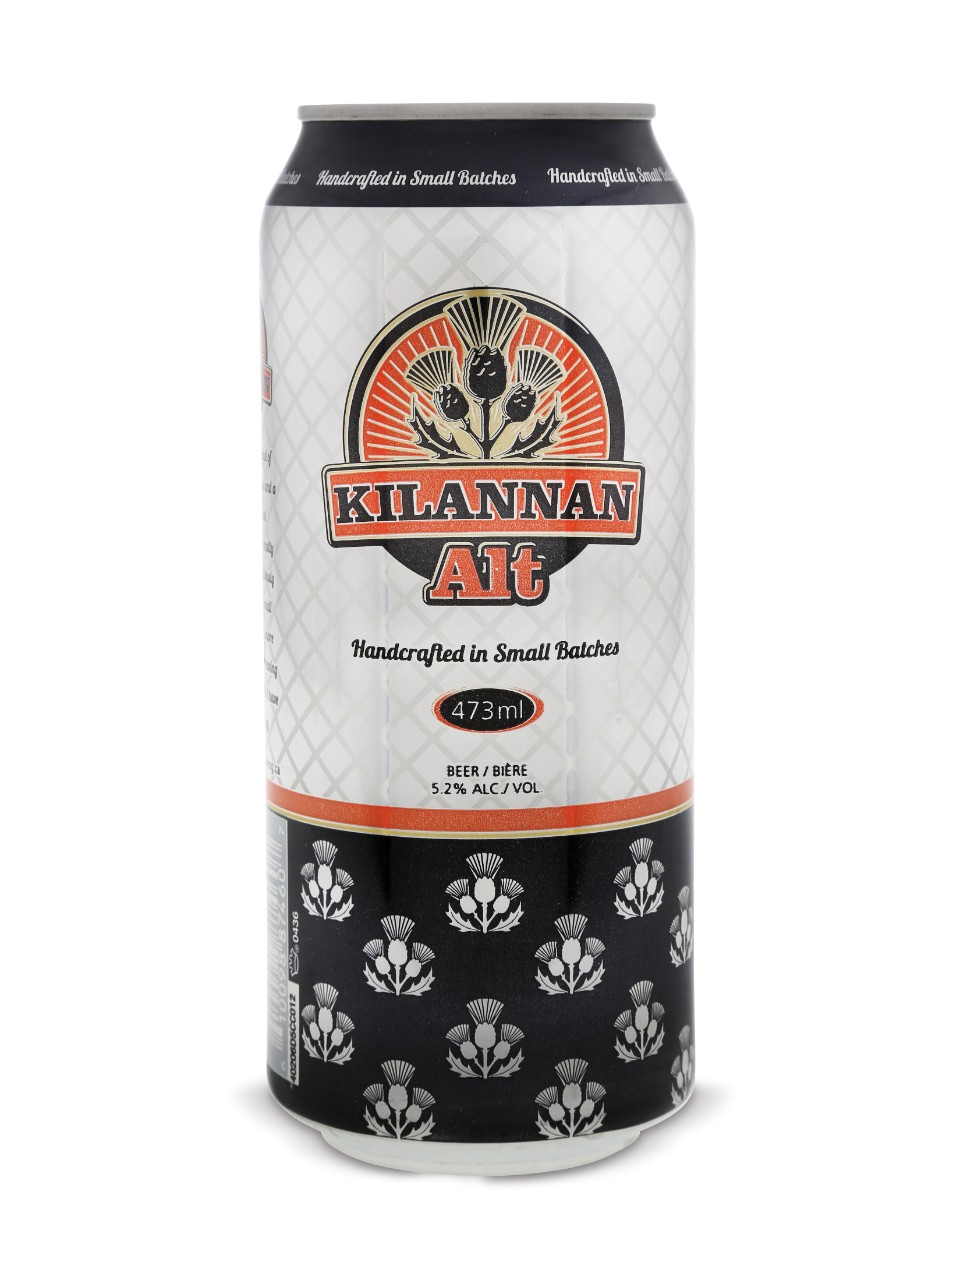 Image for Kilannan Alt from LCBO